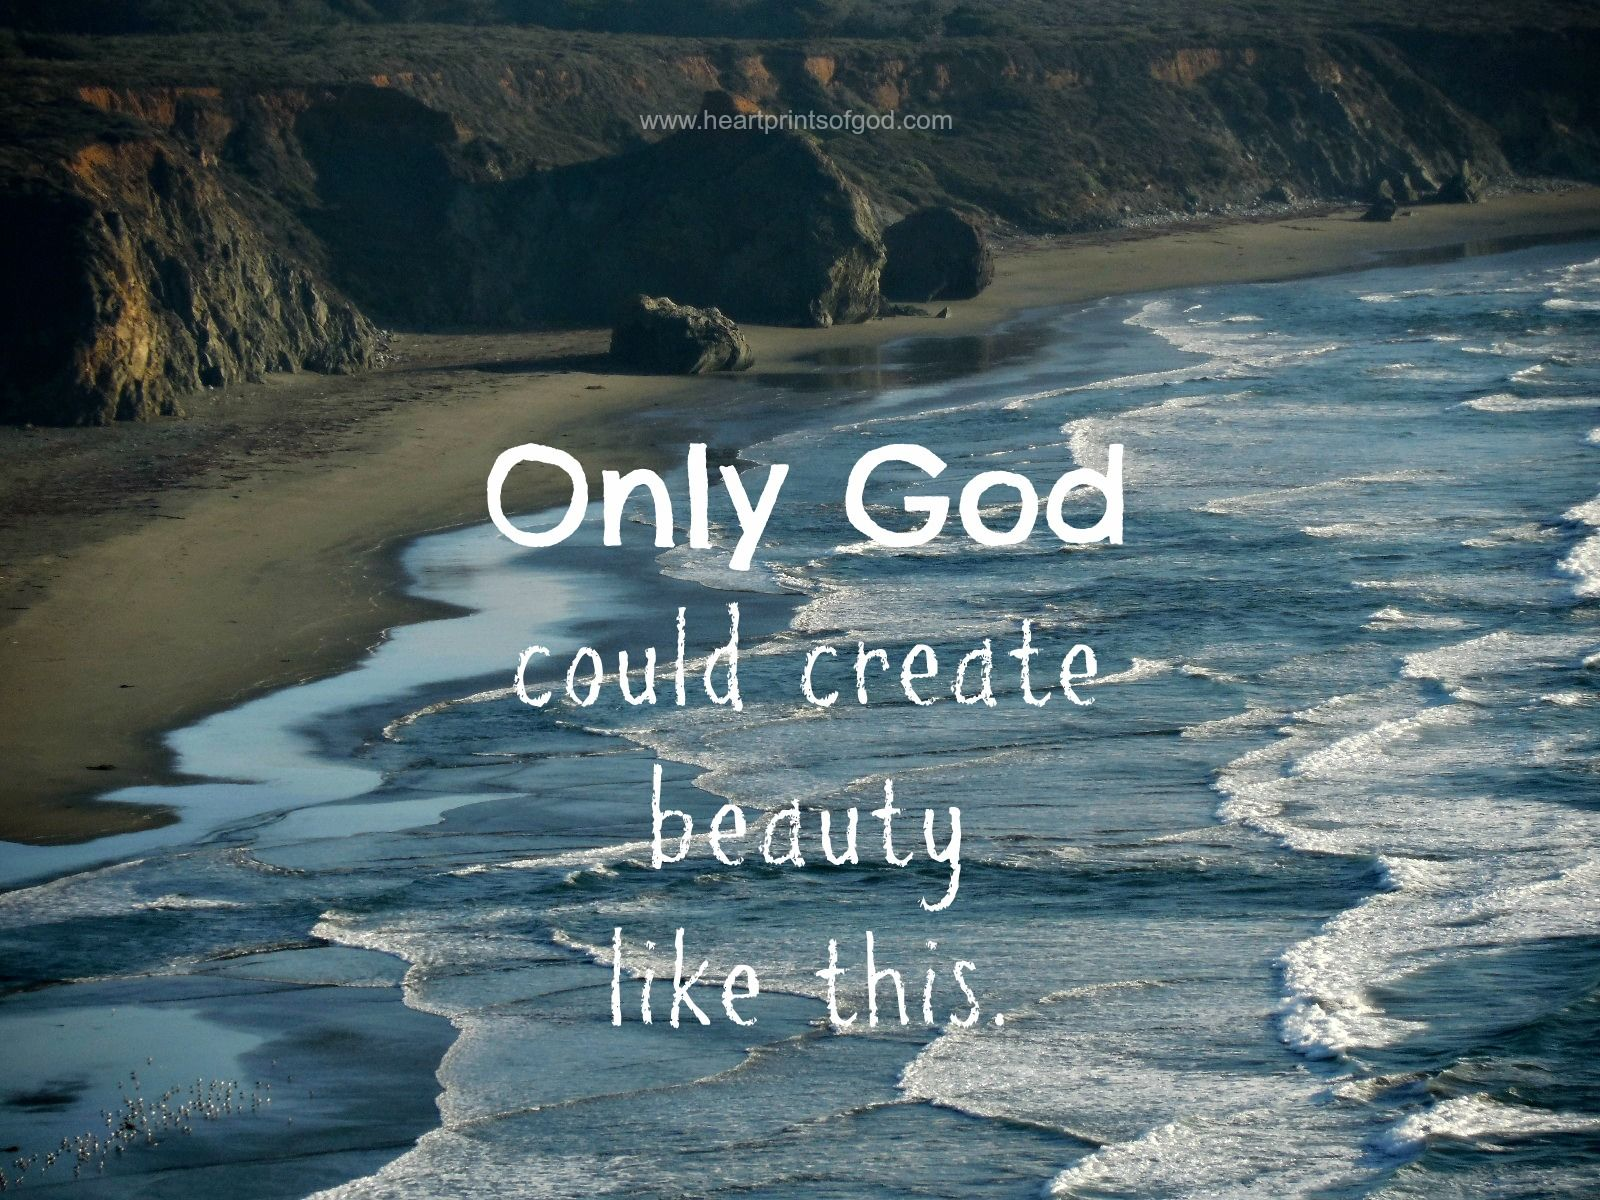 20 Beautiful Quotes About The Ocean That Will Inspire You: Only God Could Create The Beauty Of The Ocean & The Beach